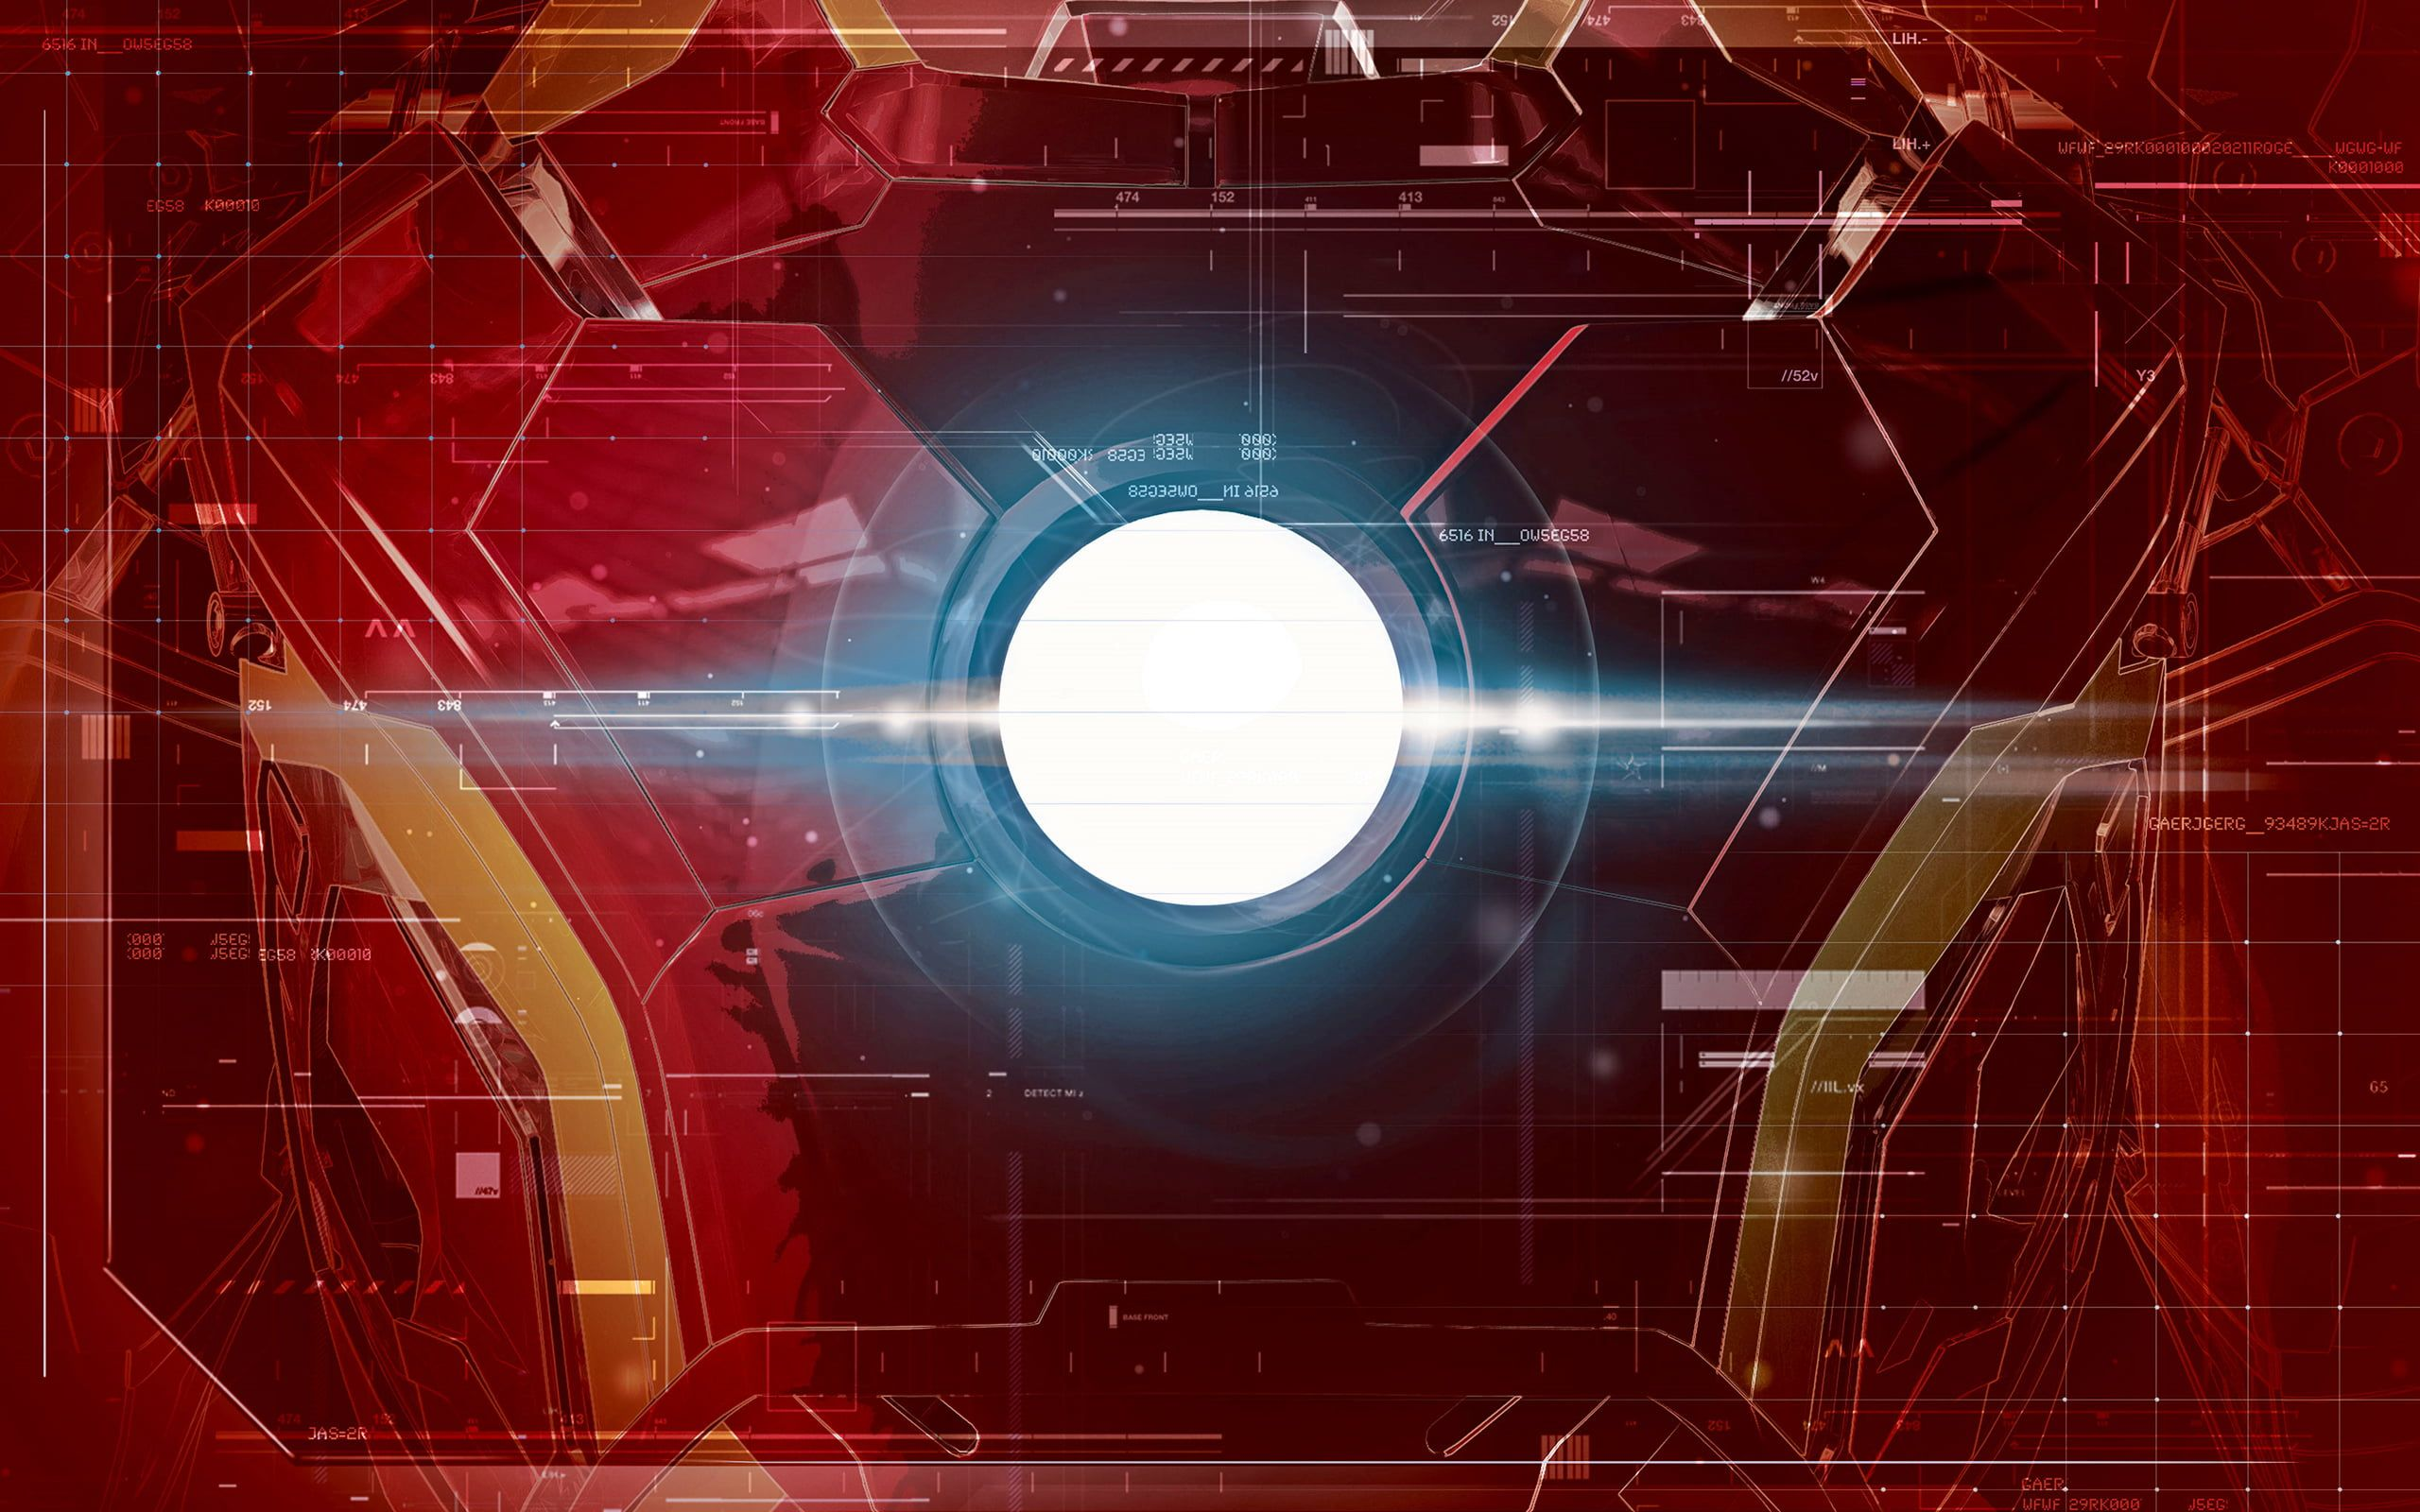 Marvel Iron Man Chest Plate Illustration Red And Blue Iron Man Graphics Art The Avengers Avengers A Iron Man Wallpaper Superhero Wallpaper Plate Illustration